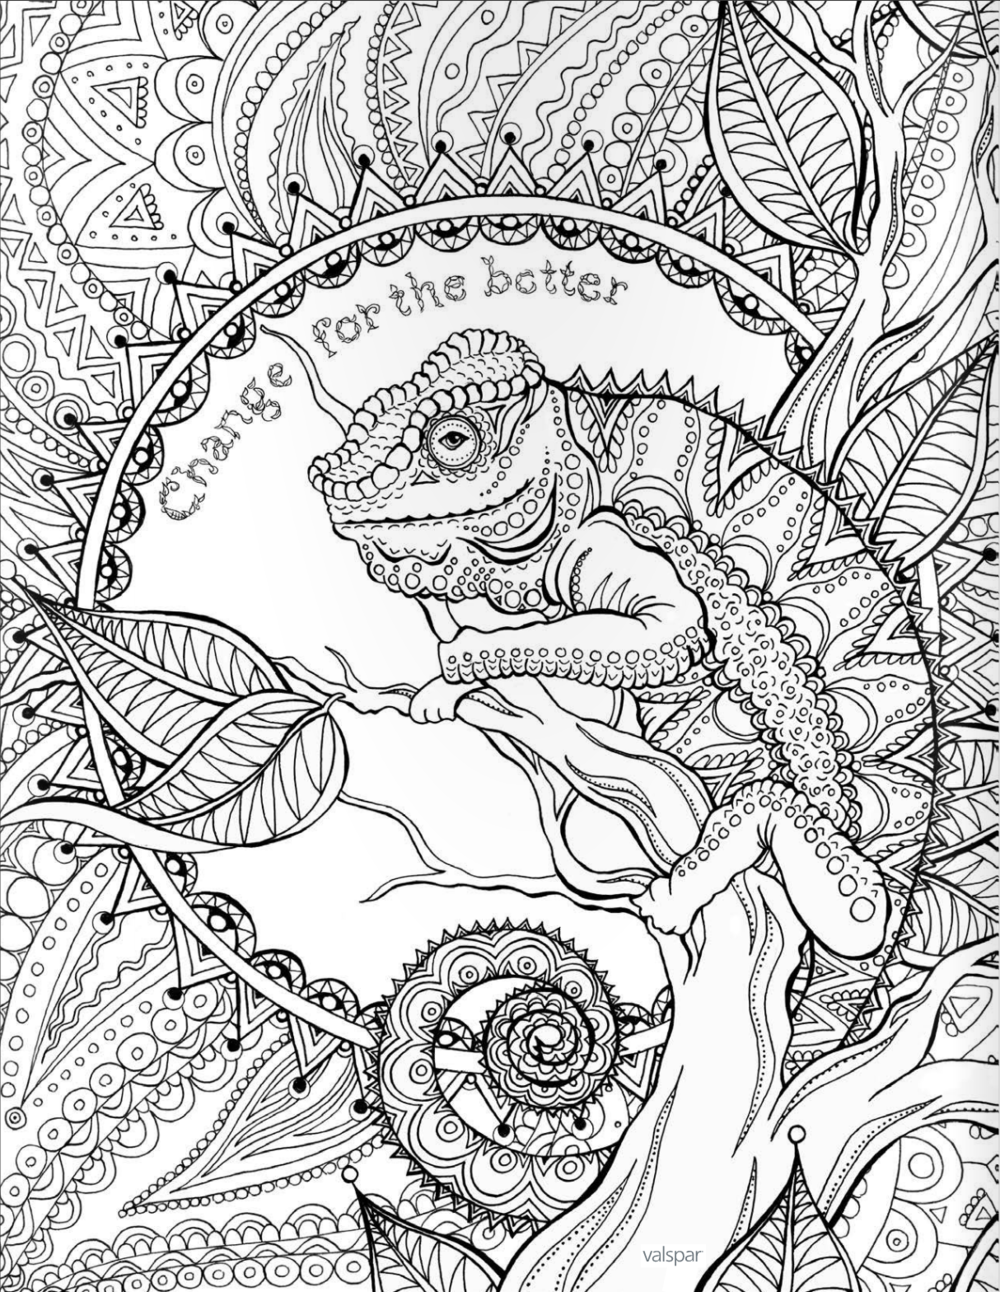 coloring-page.jpg